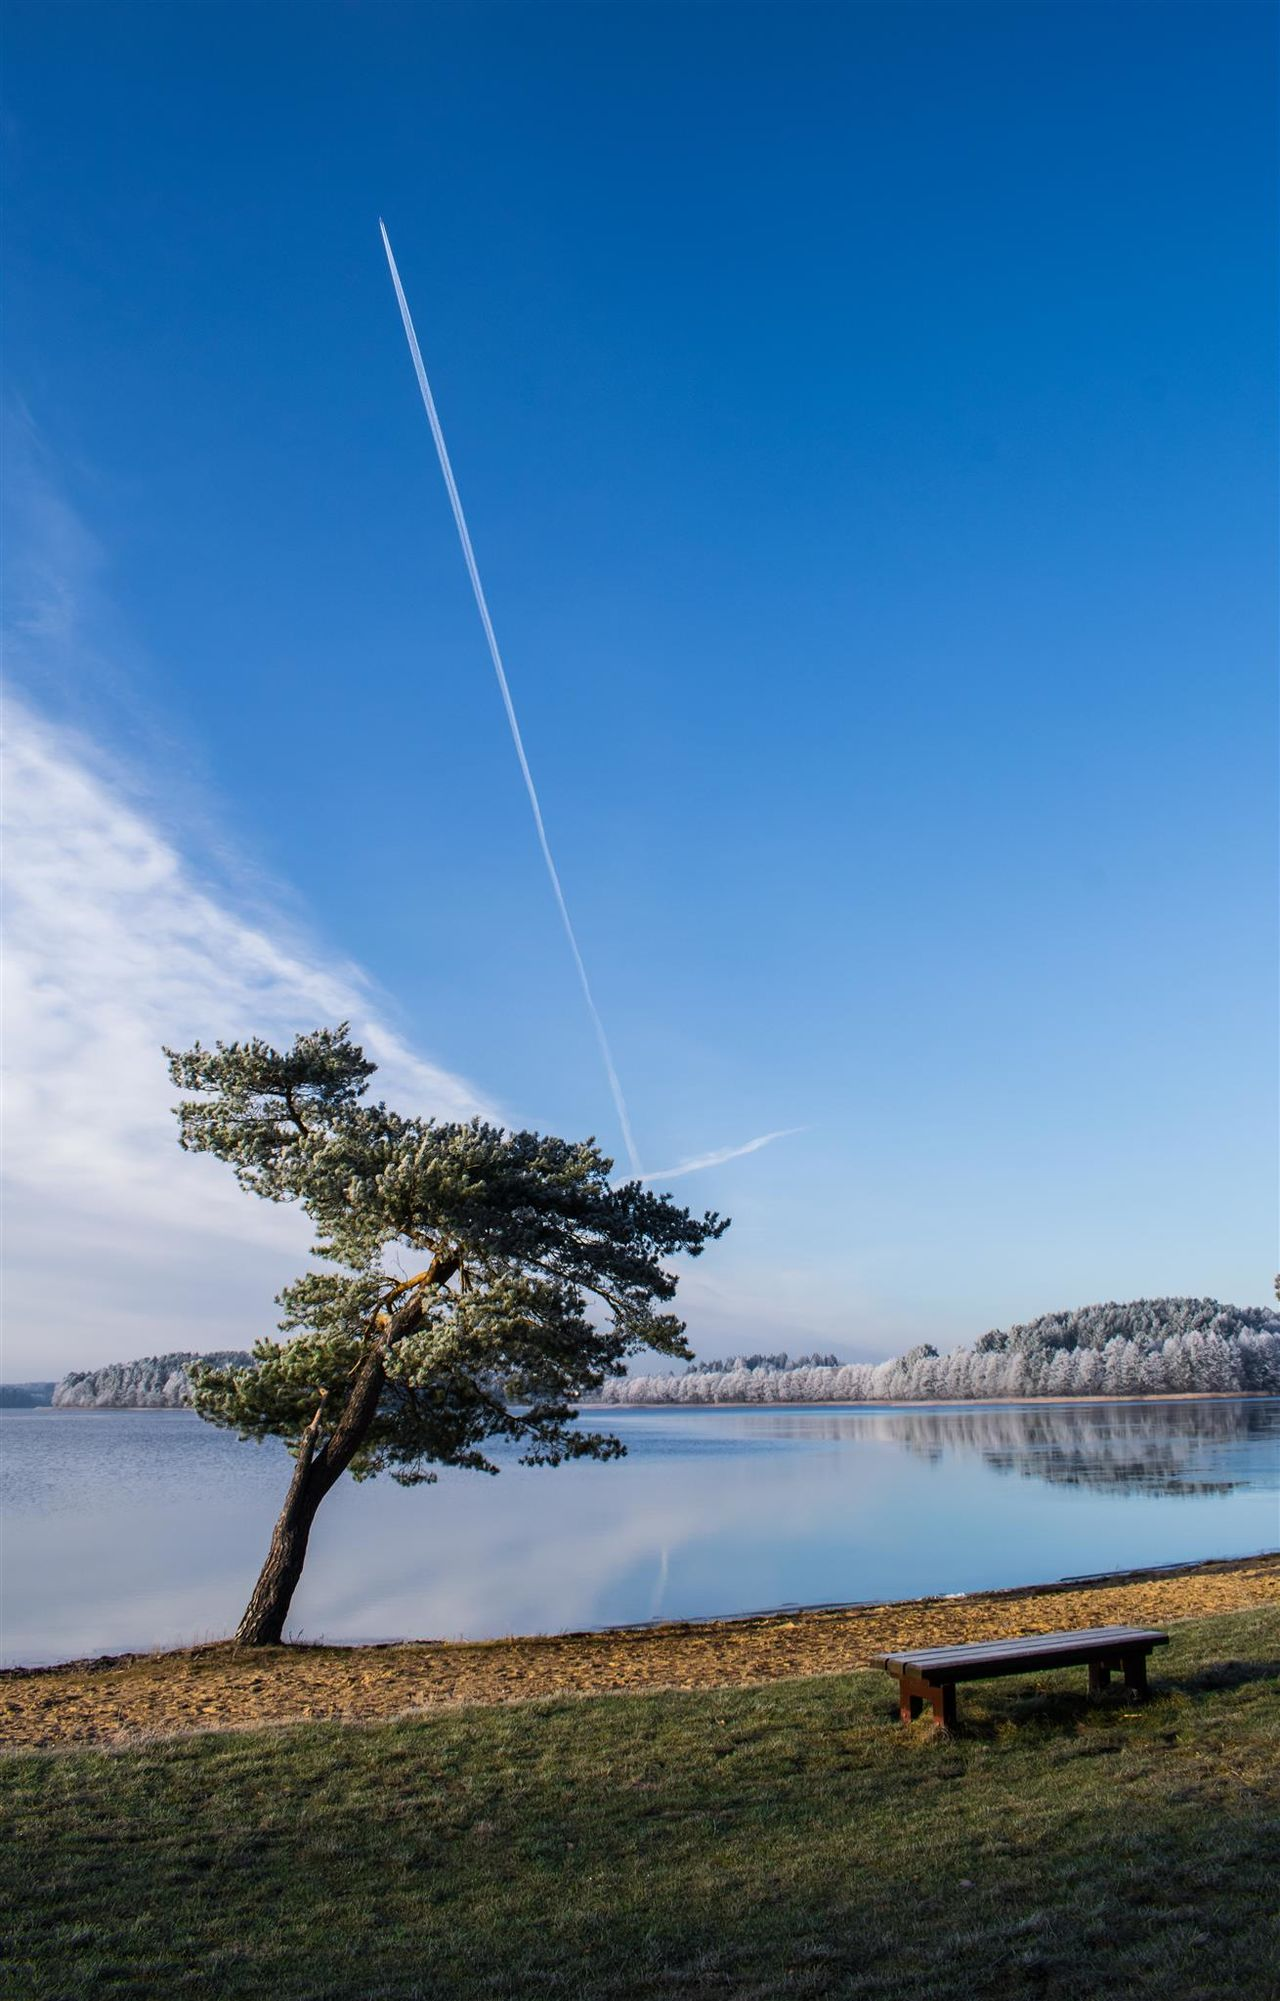 Tree Reflection Chill Place Cold Temperature Winter Tranquility Cloud - Sky Sky Water Nature Blue Landscape No People Outdoors Clear Sky Beauty In Nature Airplane Flying Day